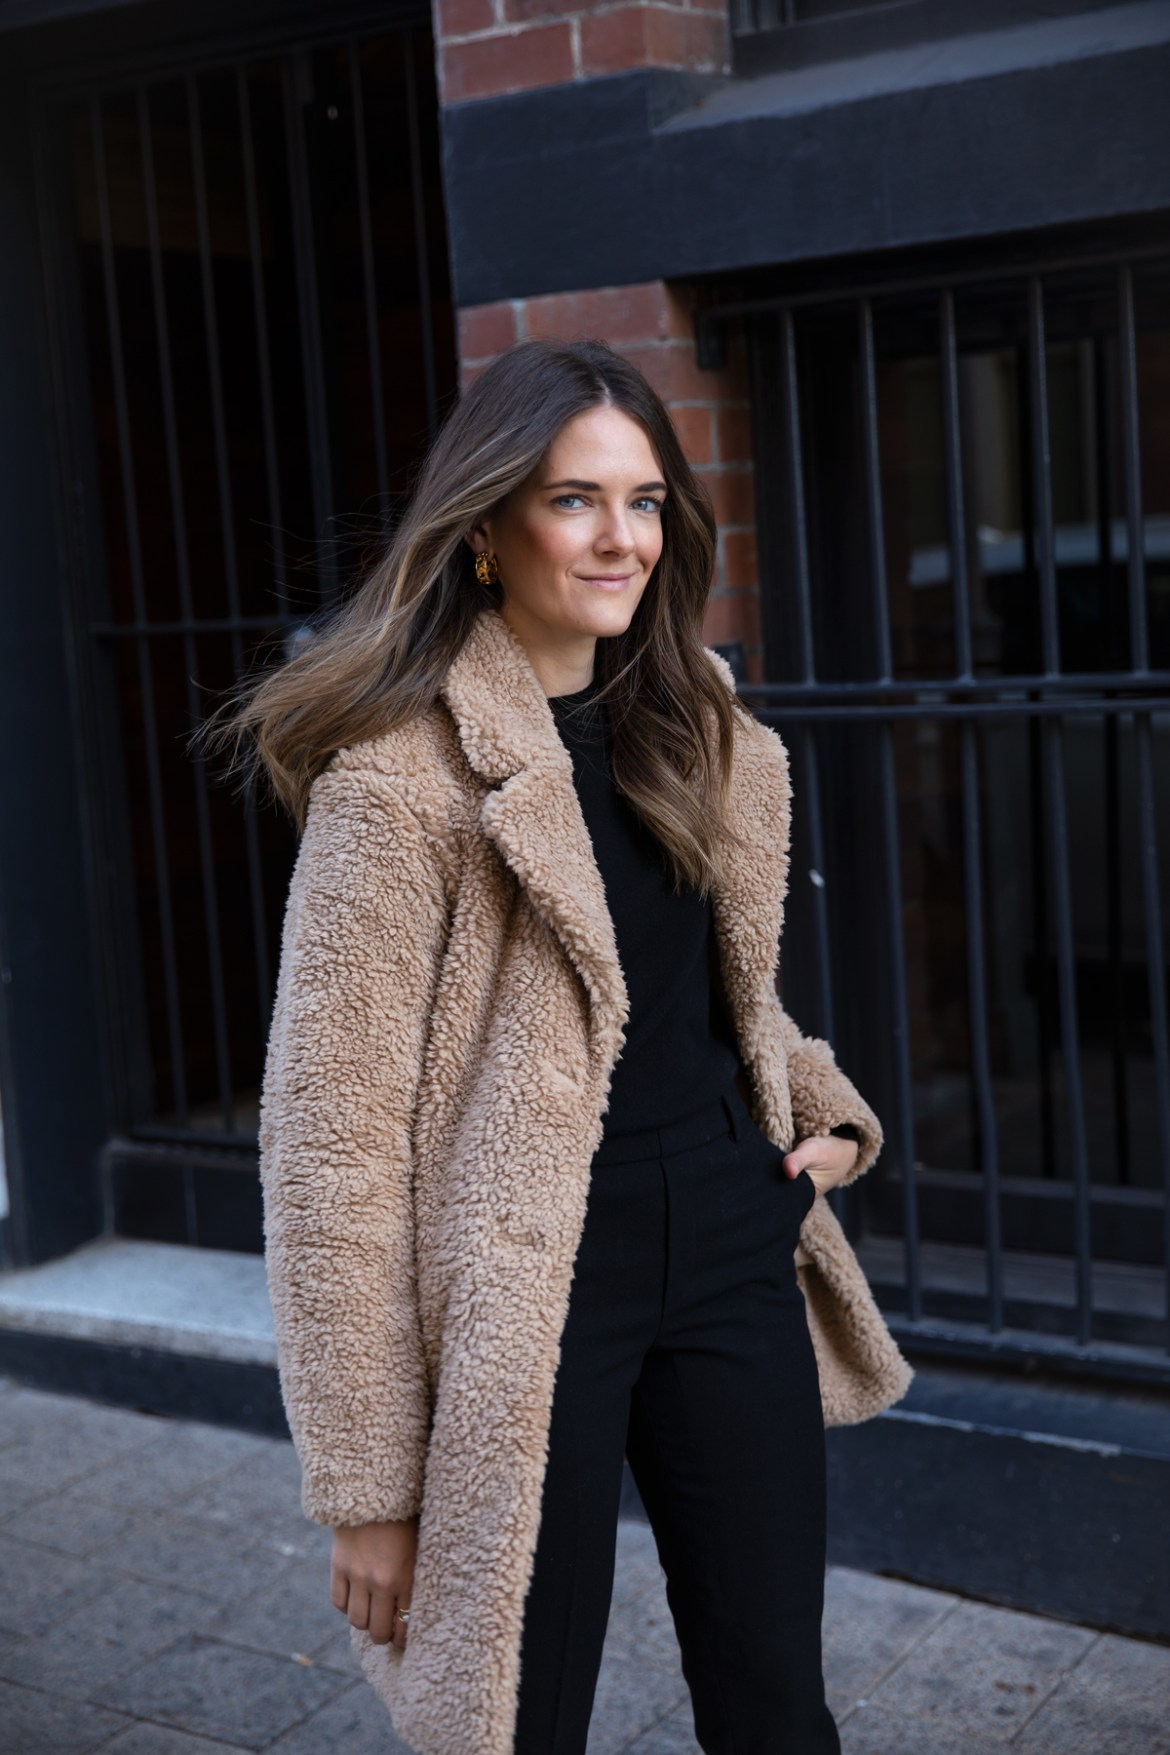 fleece teddy coat from Uniqlo with wool pants for Autumn Winter outfit ideas worn by Inspiring Wit fashion blogger Jenelle